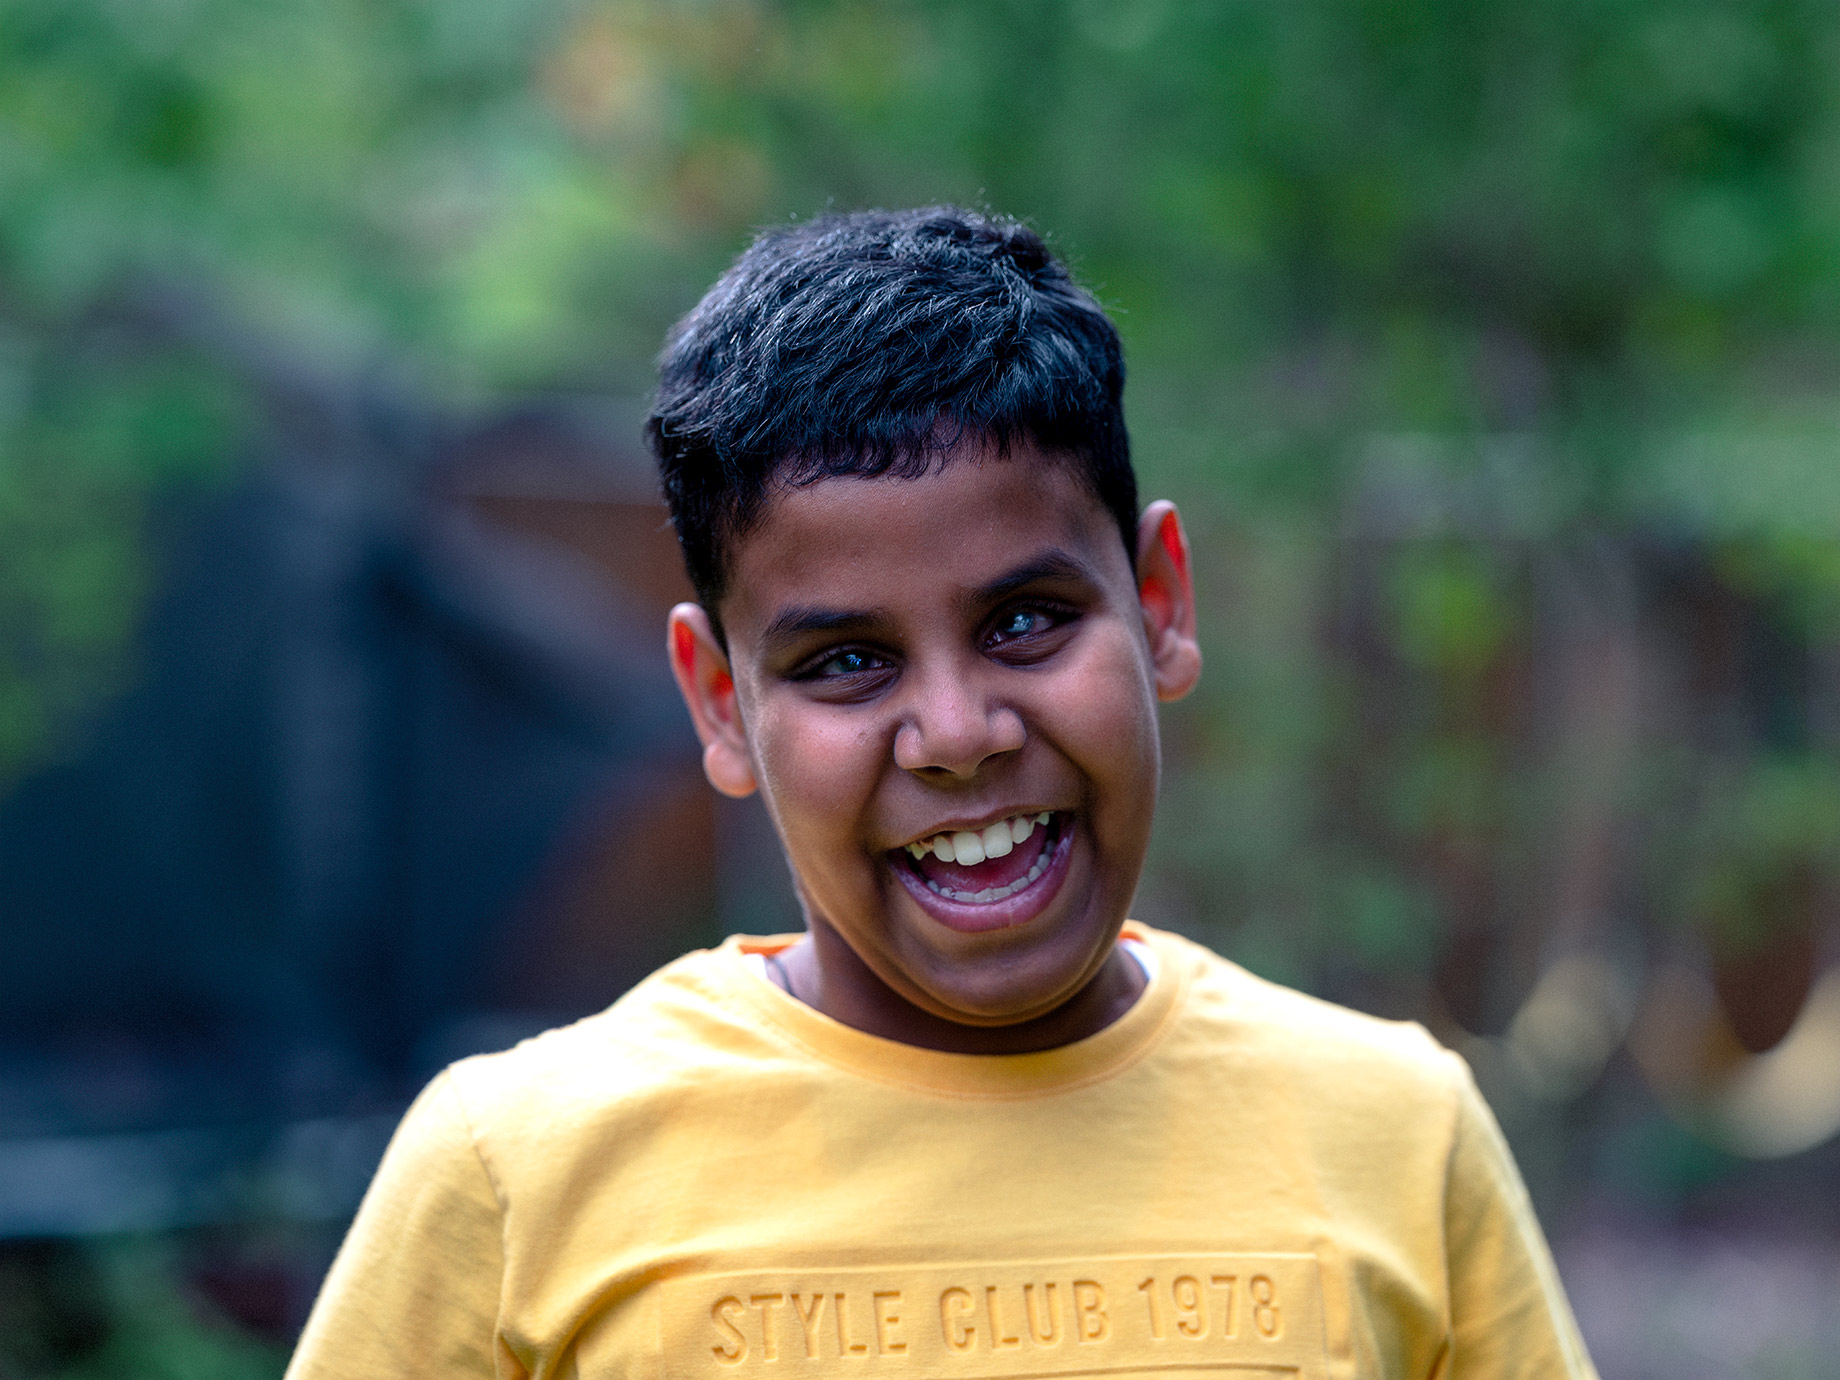 Laughing young boy, Good Boy Wolf Photographer, filmic portrait